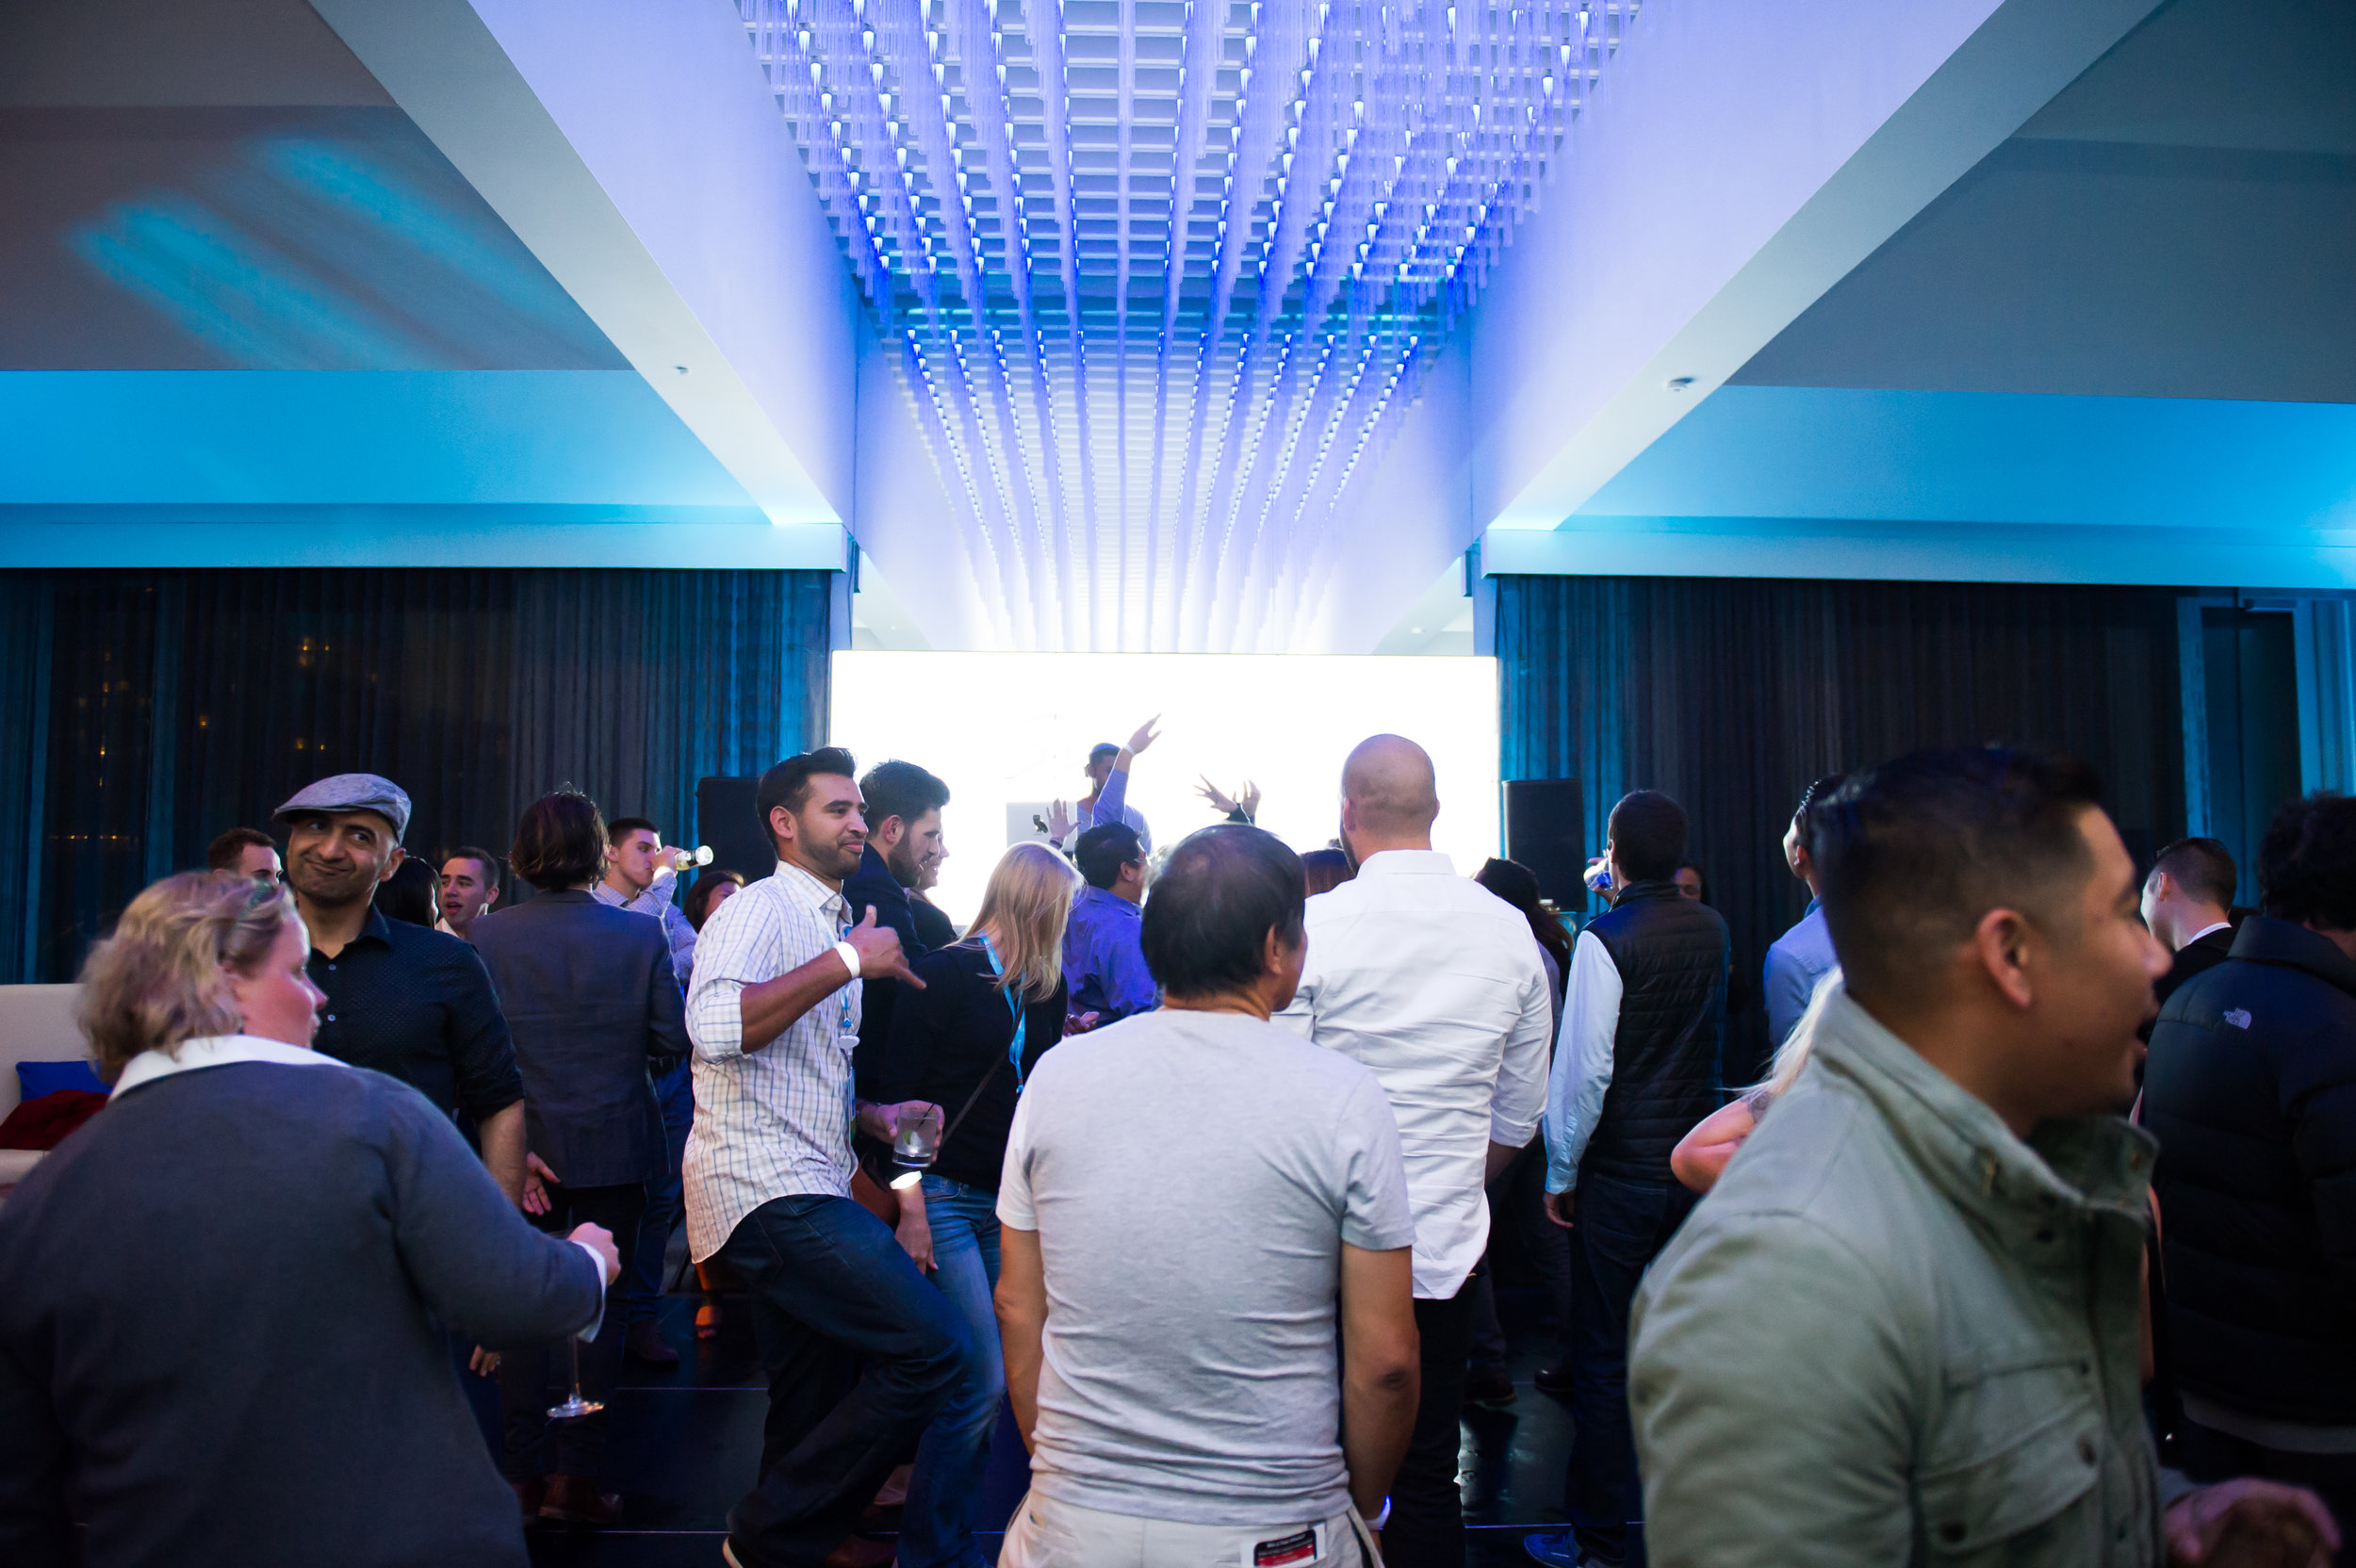 Chloe-Jackman-Photography-Dreamforce-After-Party-2016-451.jpg